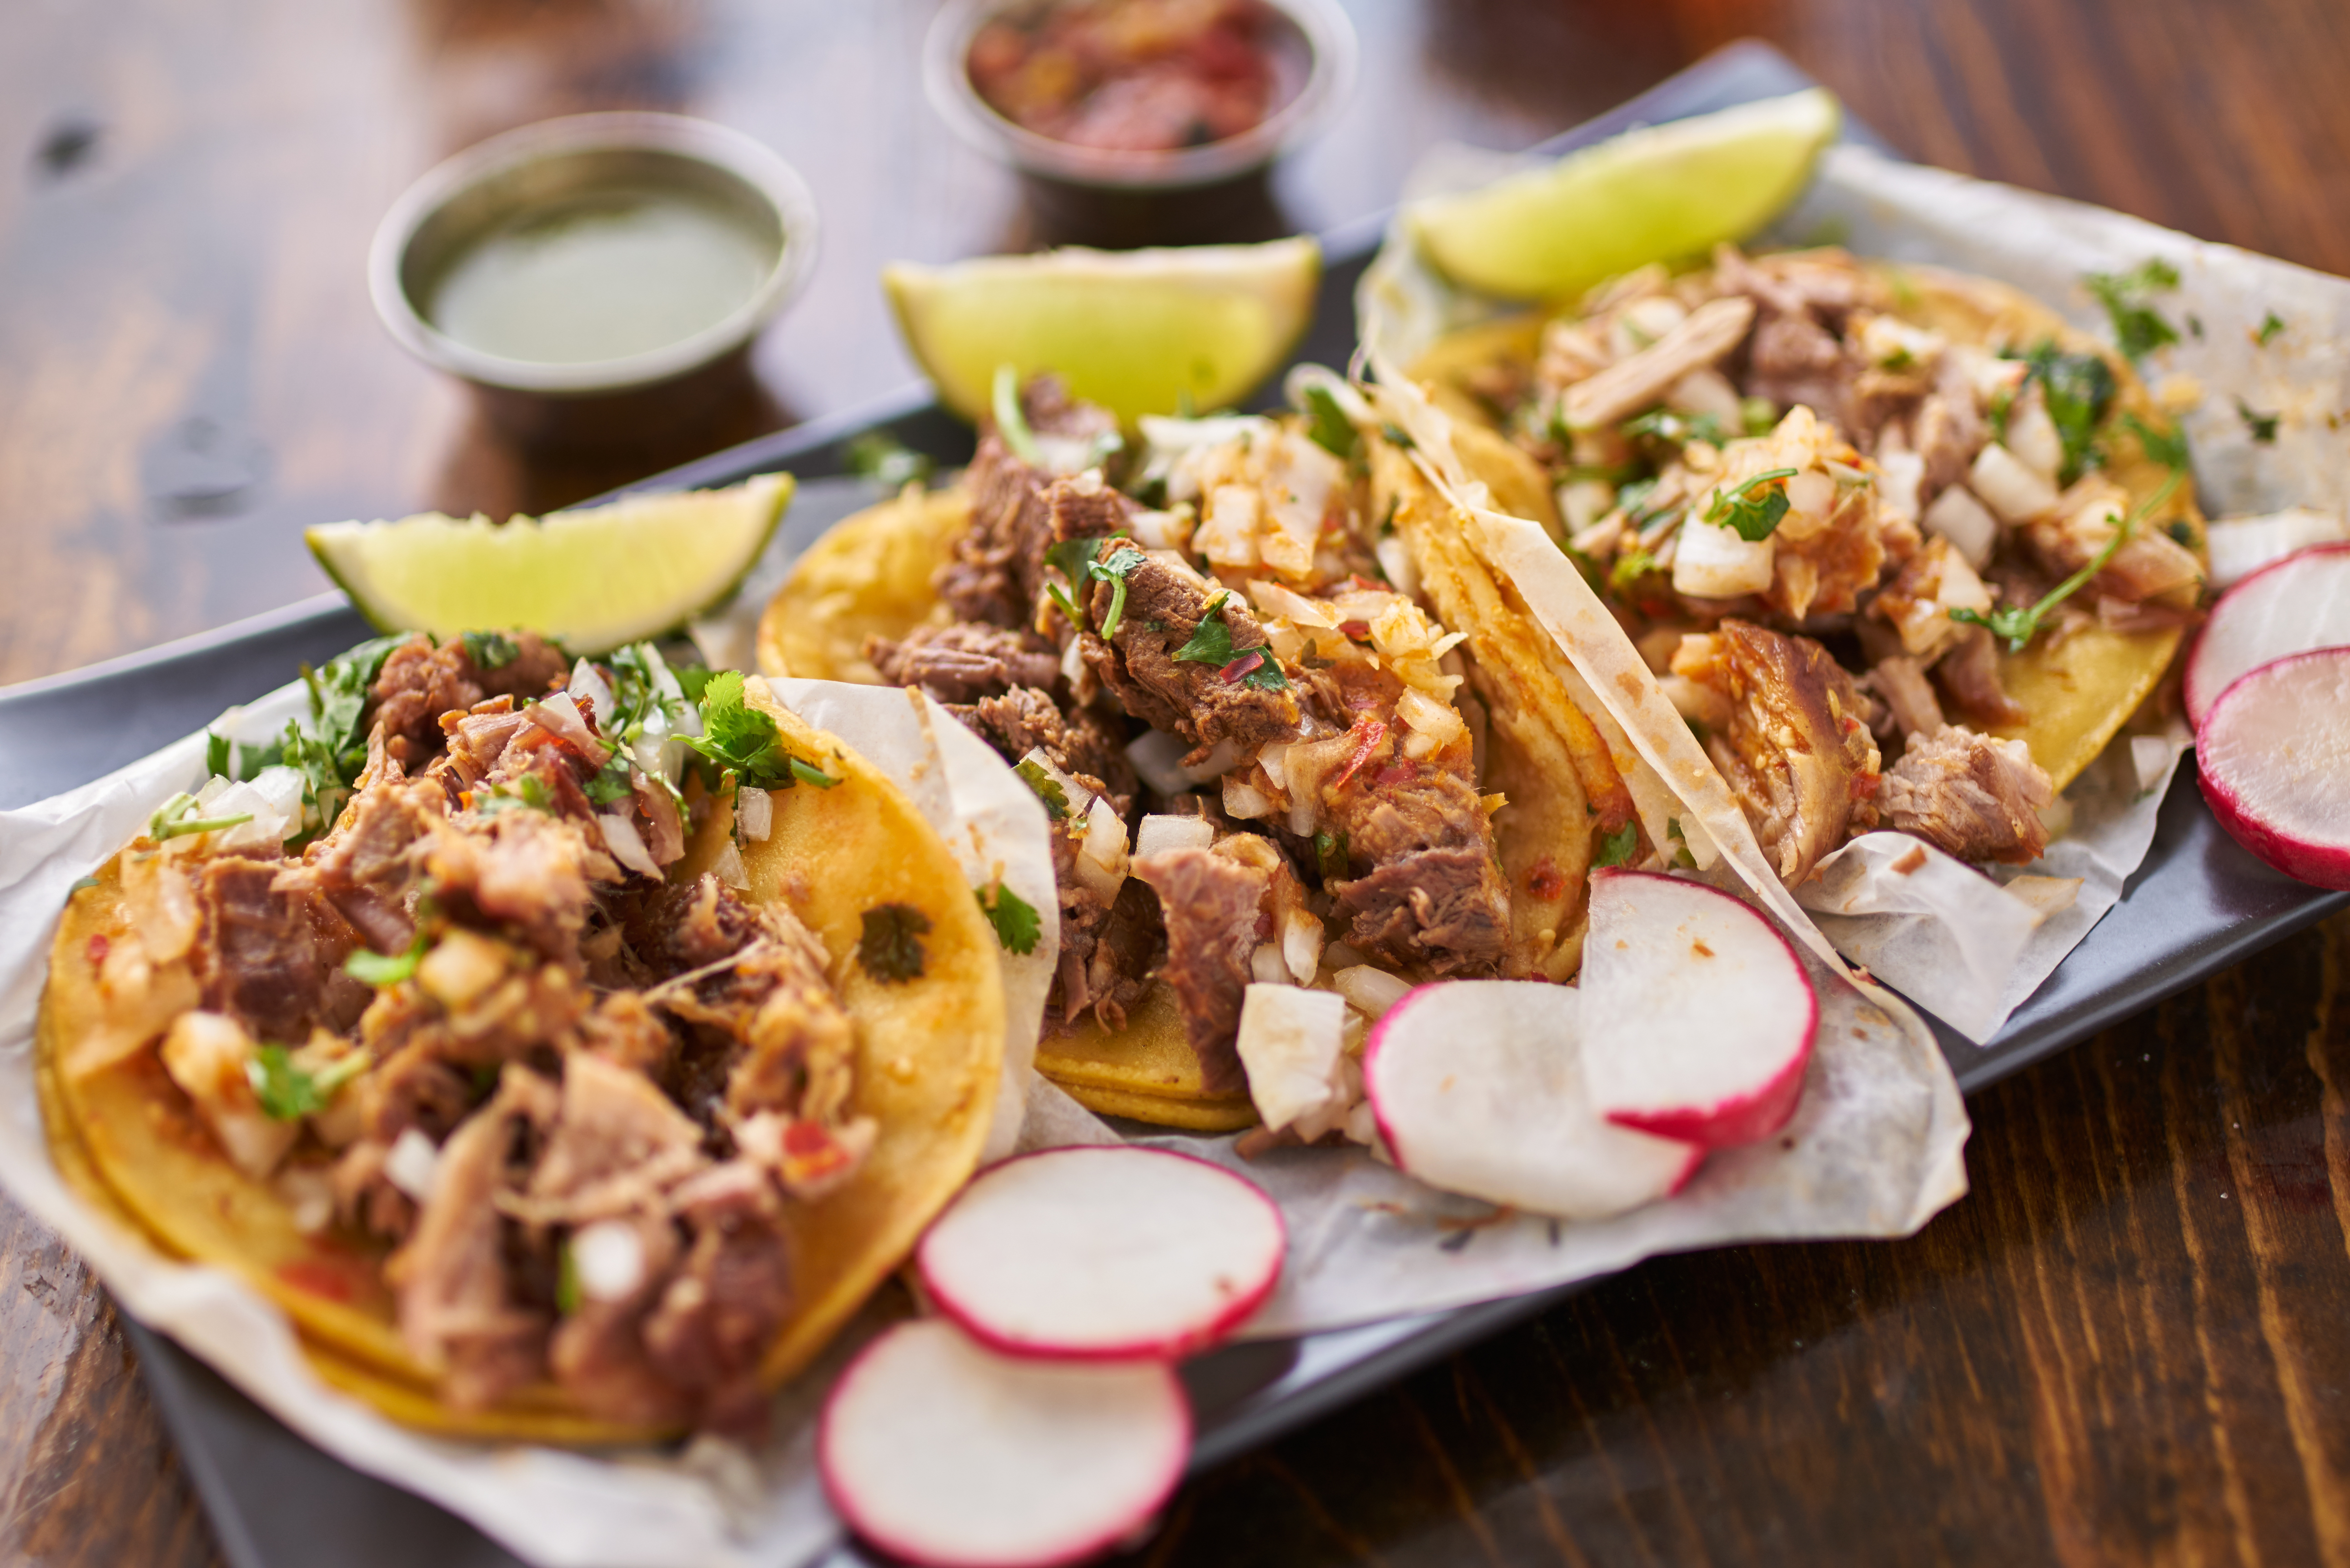 Three tacos in yellow corn tortillas with meat and garnishes.